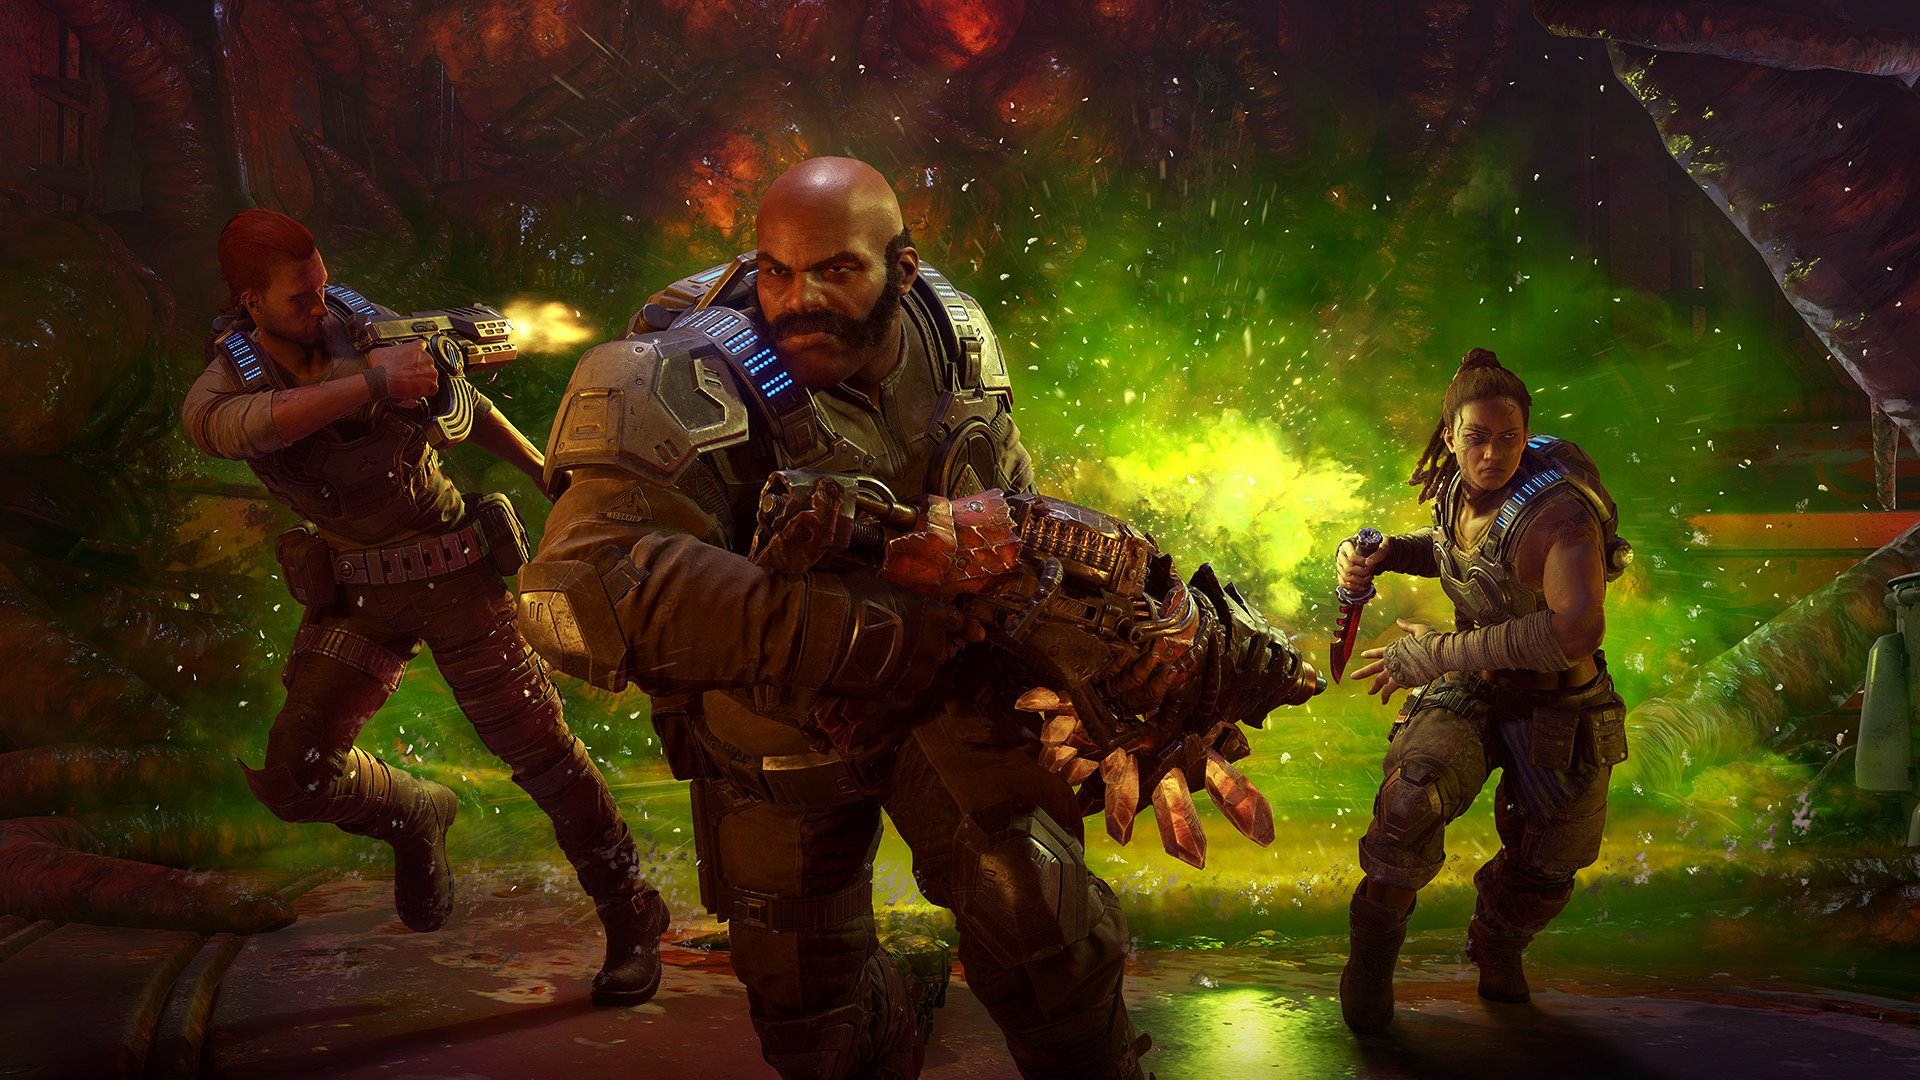 Gears 5 is getting a Halo: Reach crossover with characters available to use in co-op modes.